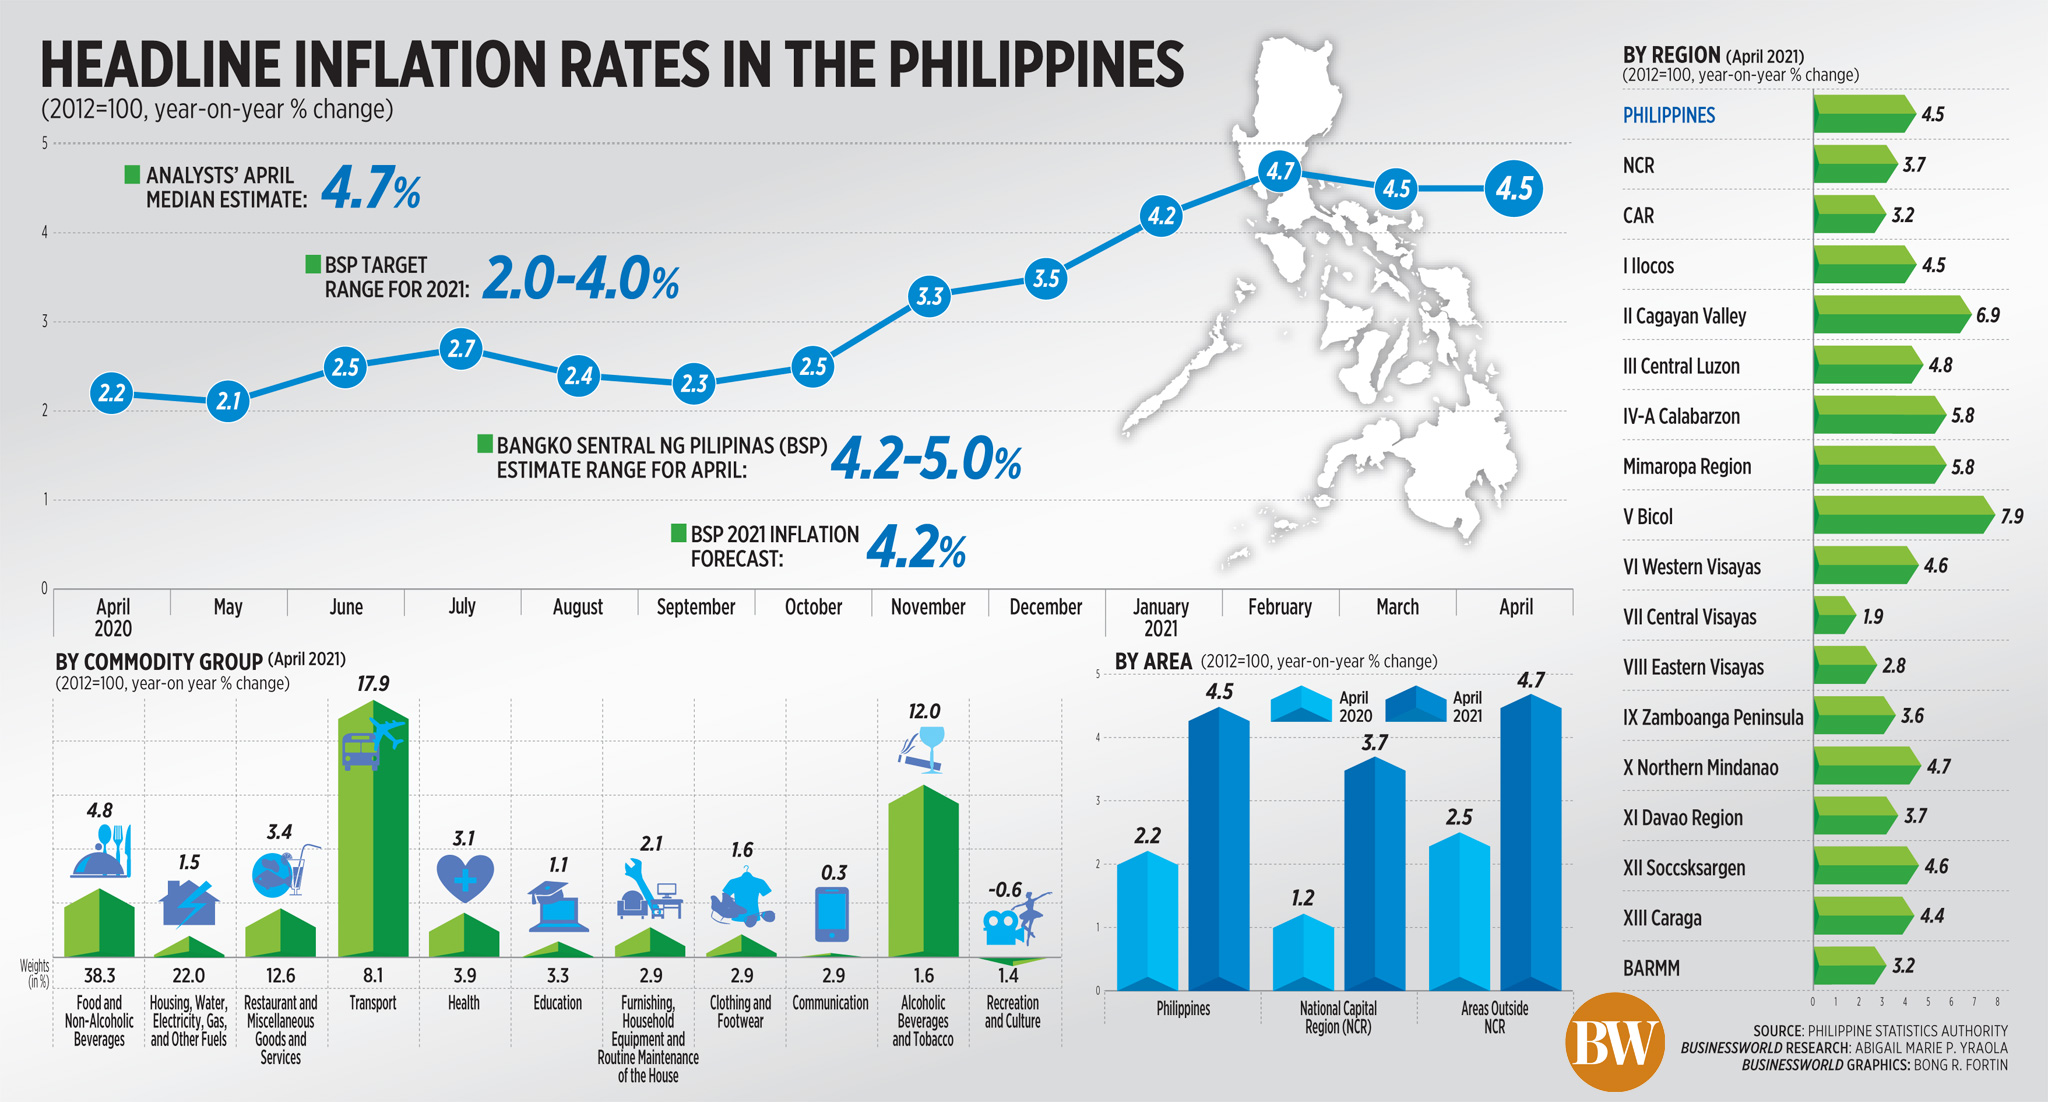 Headline inflation rates in the Philippines (April 2021)